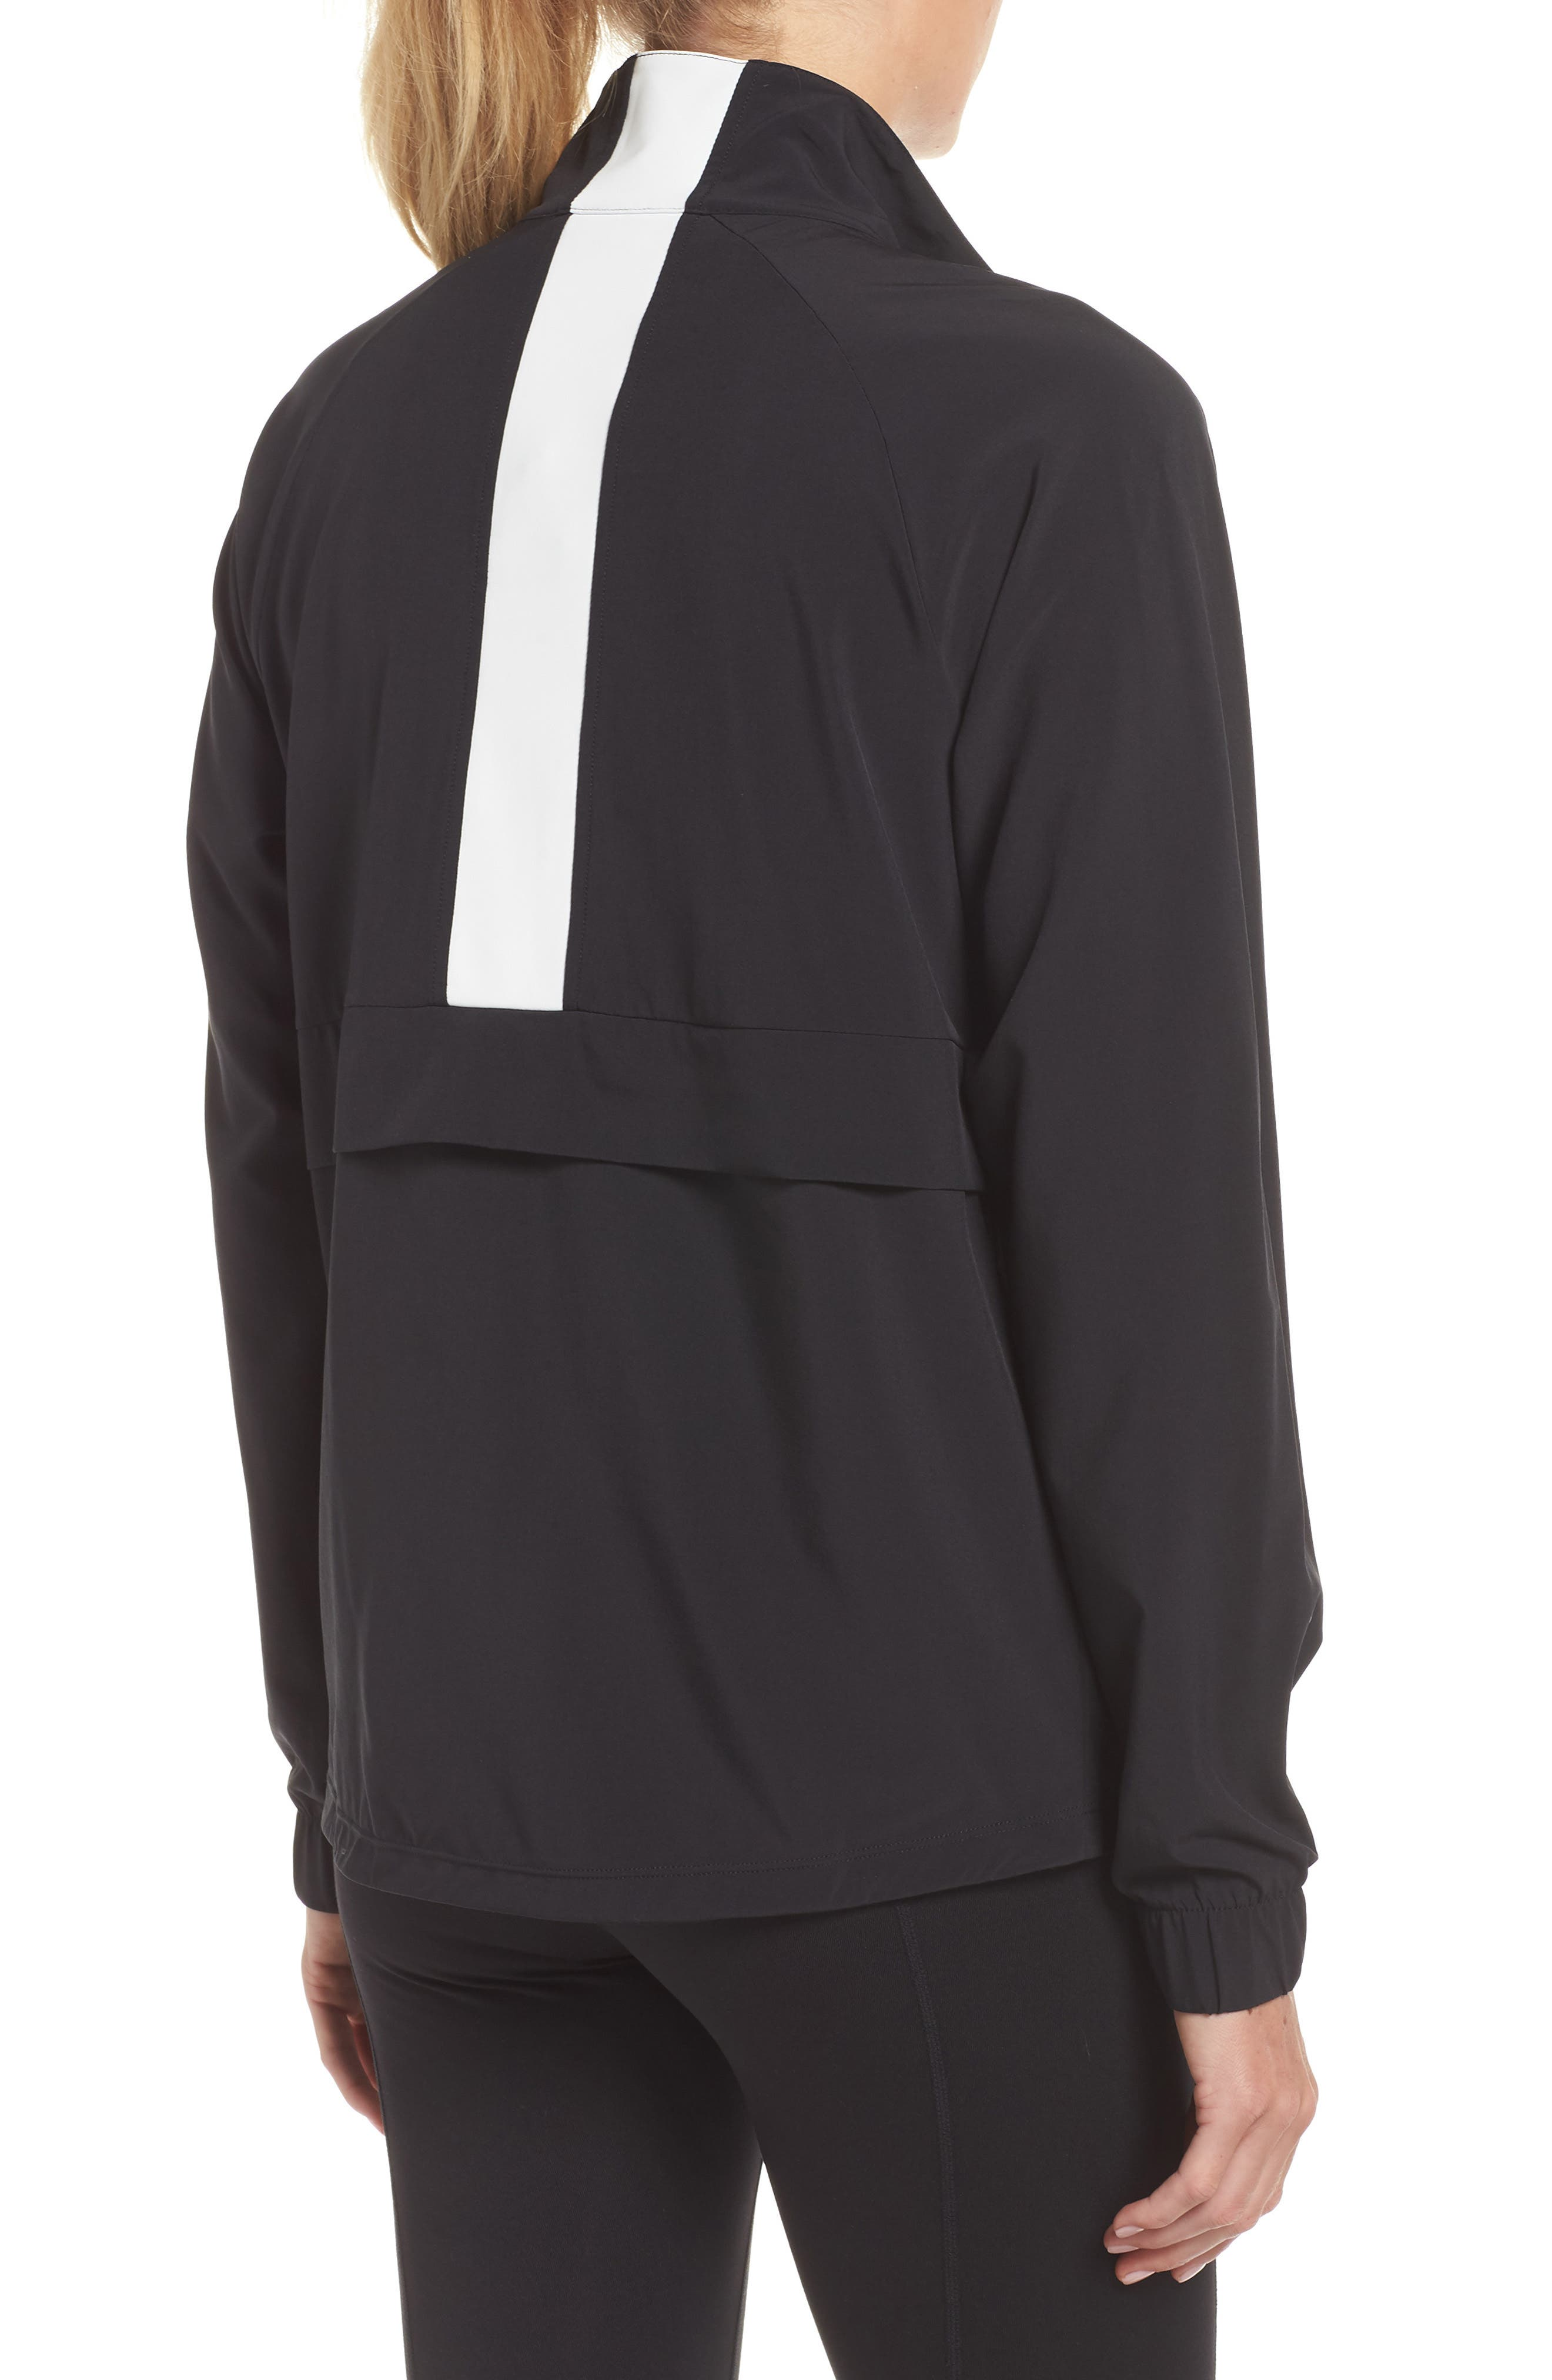 Freestyle Reflective Run Pullover,                             Alternate thumbnail 2, color,                             001